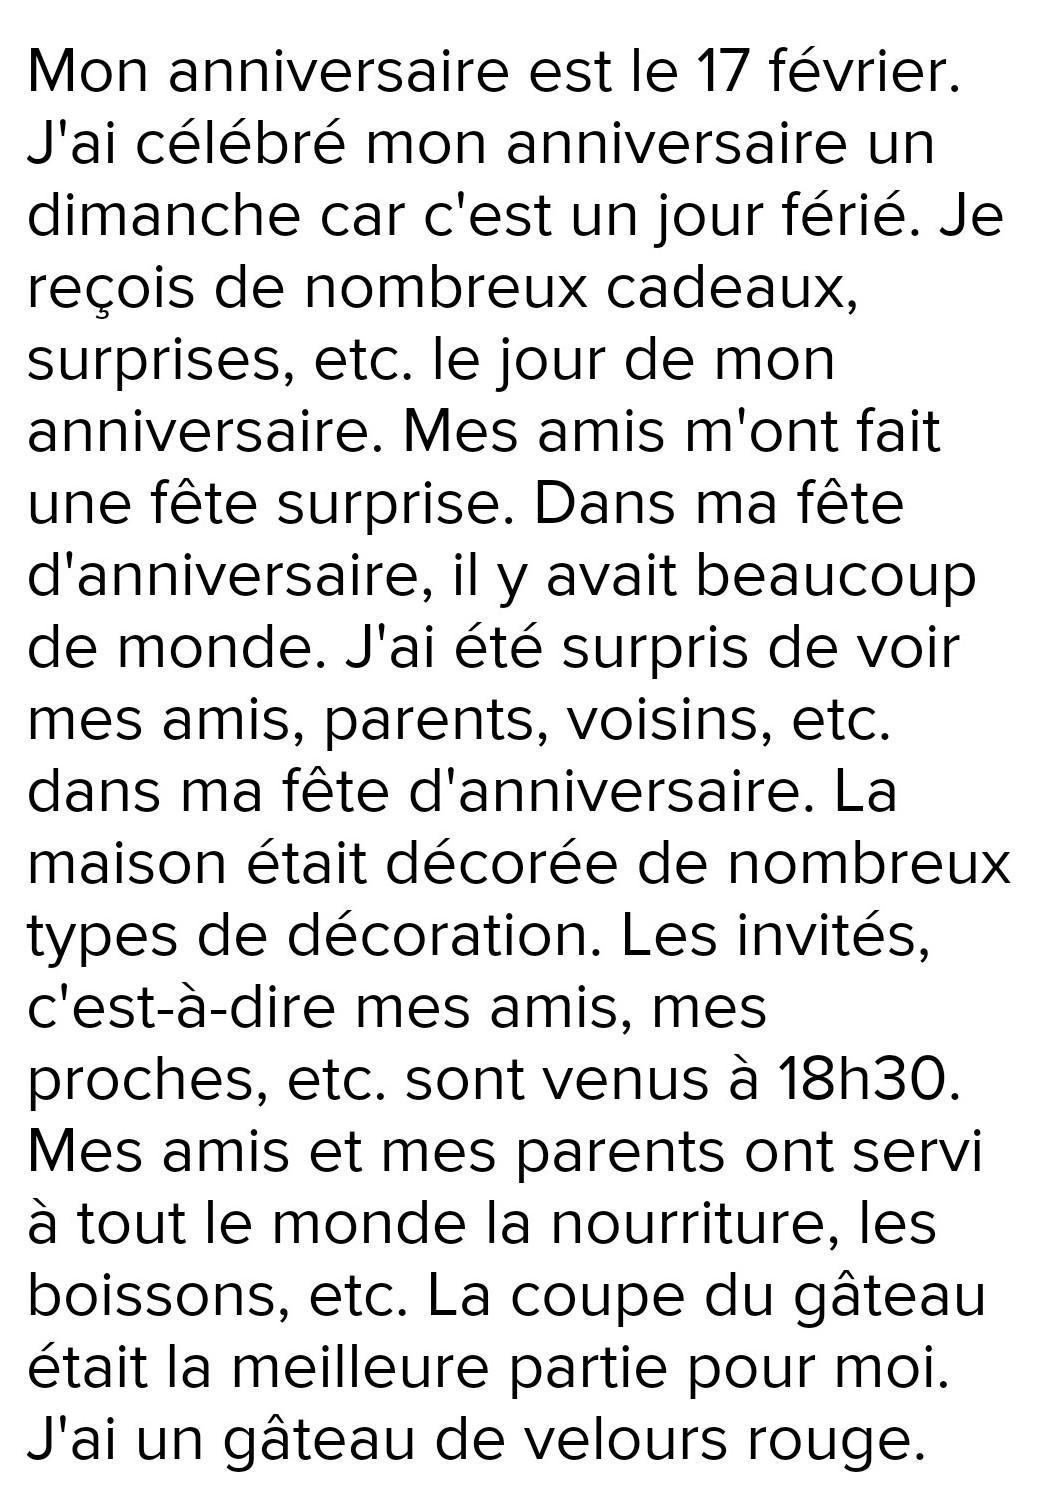 Essay On My Birthday In French What Do I Write About My Birthday In French Brainly In